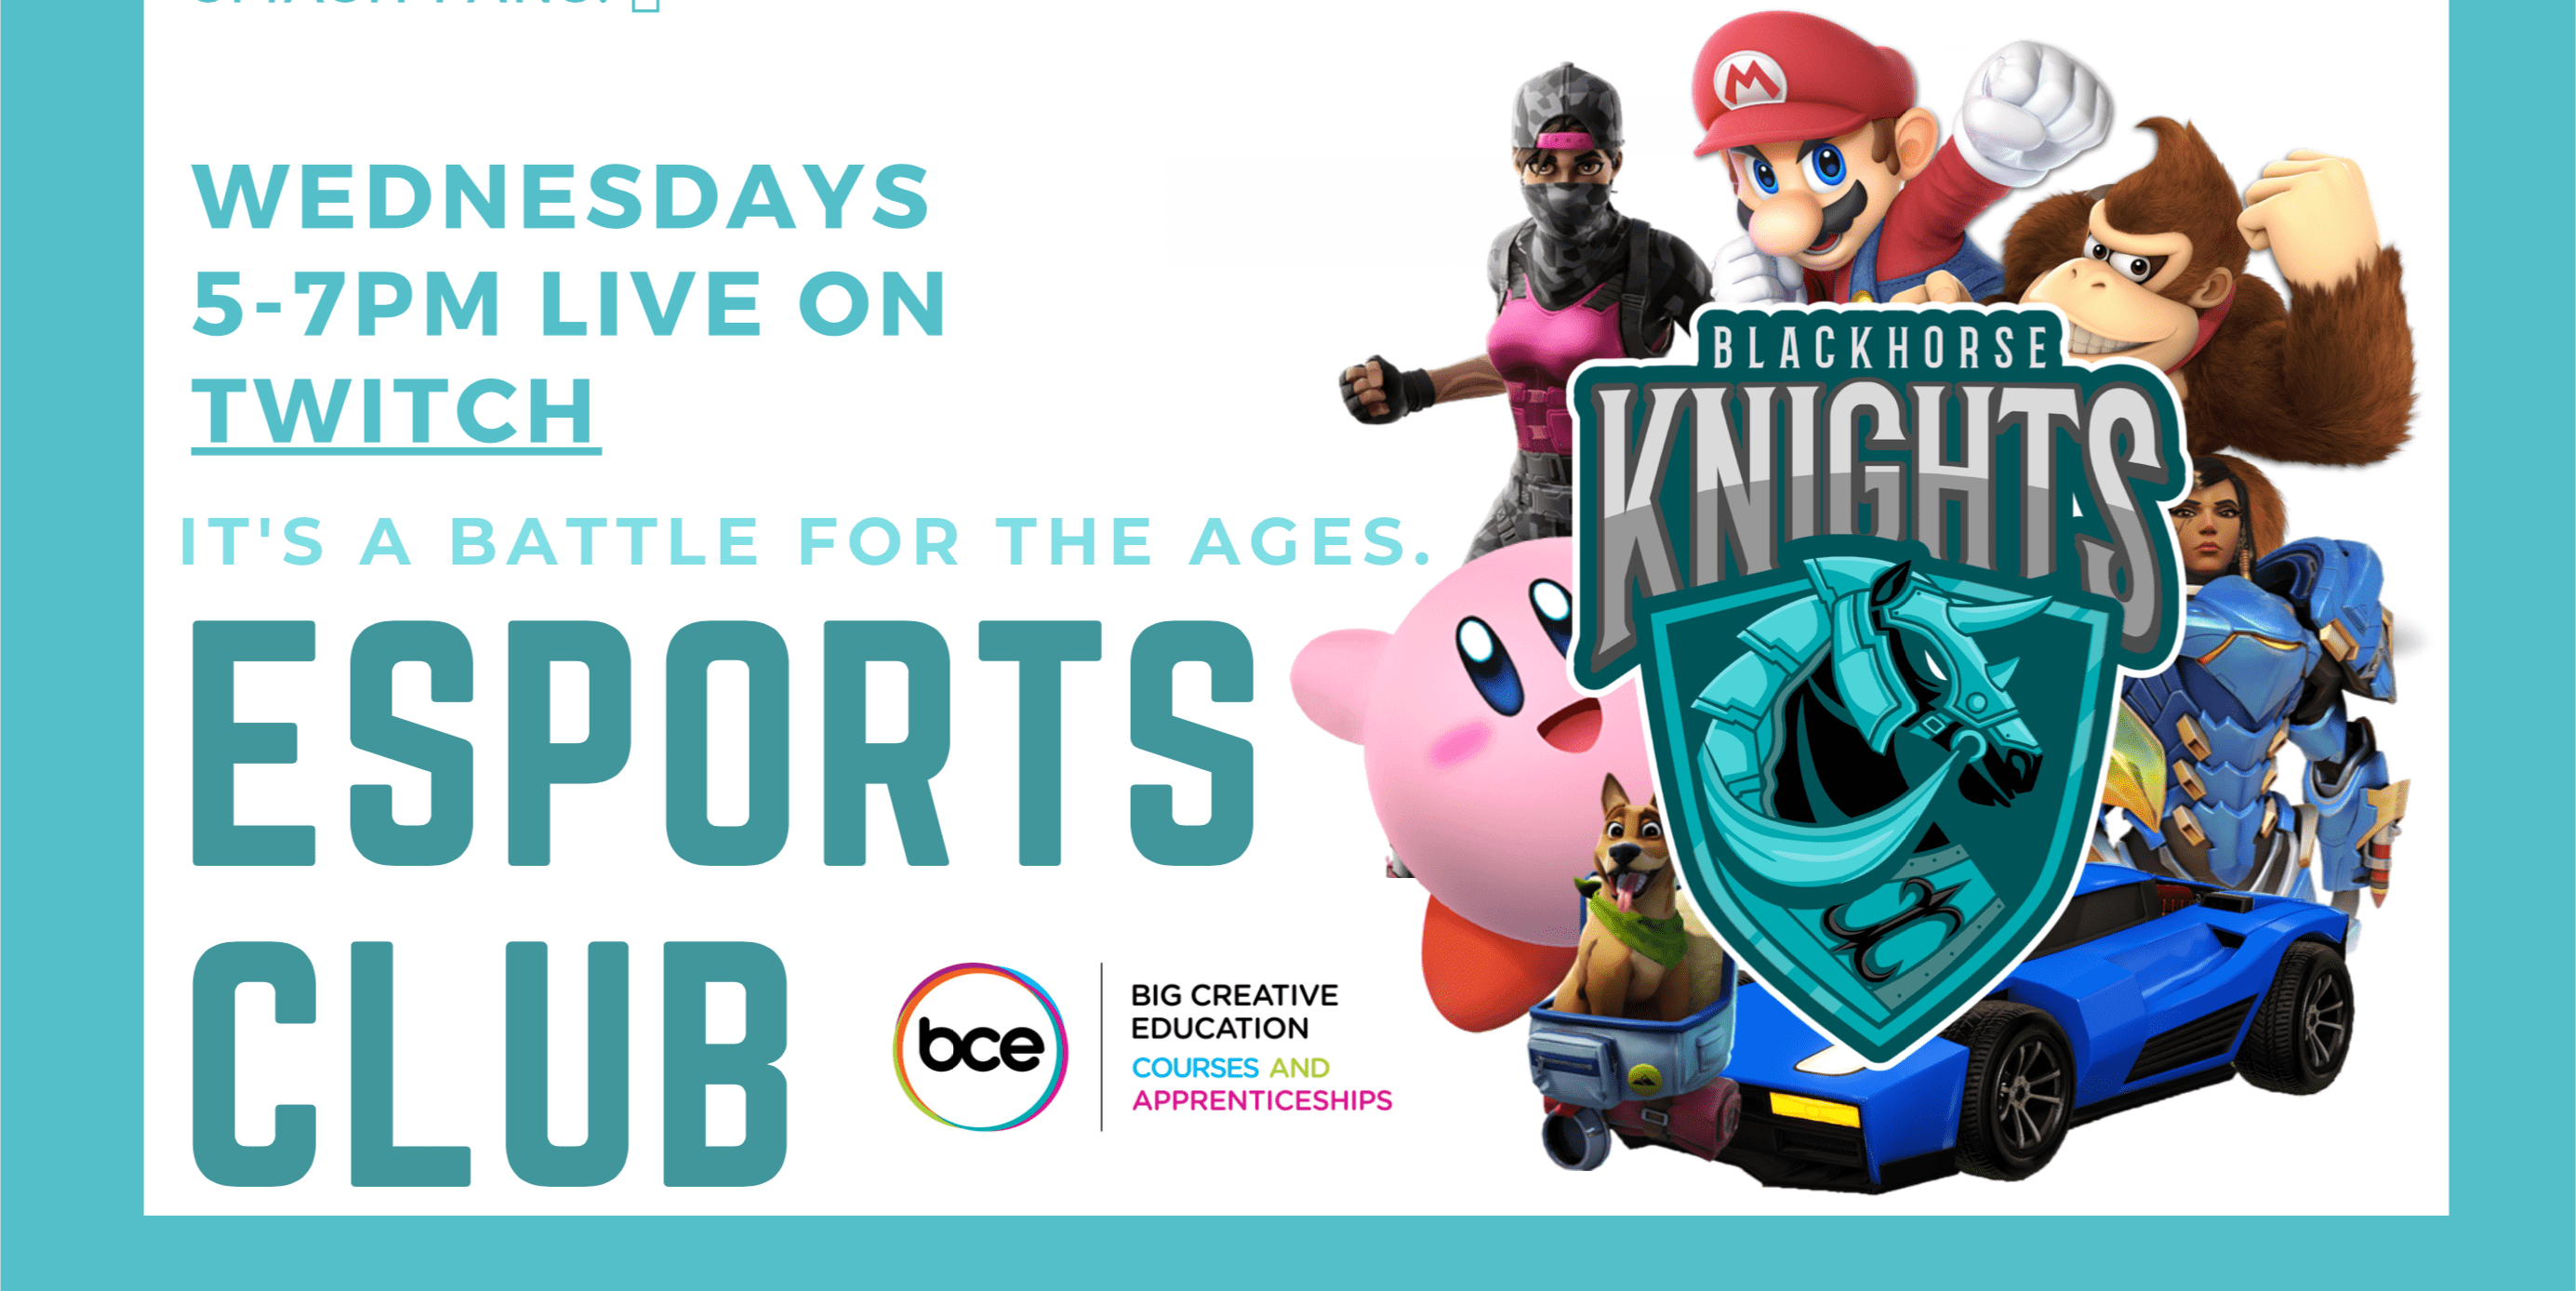 WEDNESDAY eSports with the Blackhorse Knights!